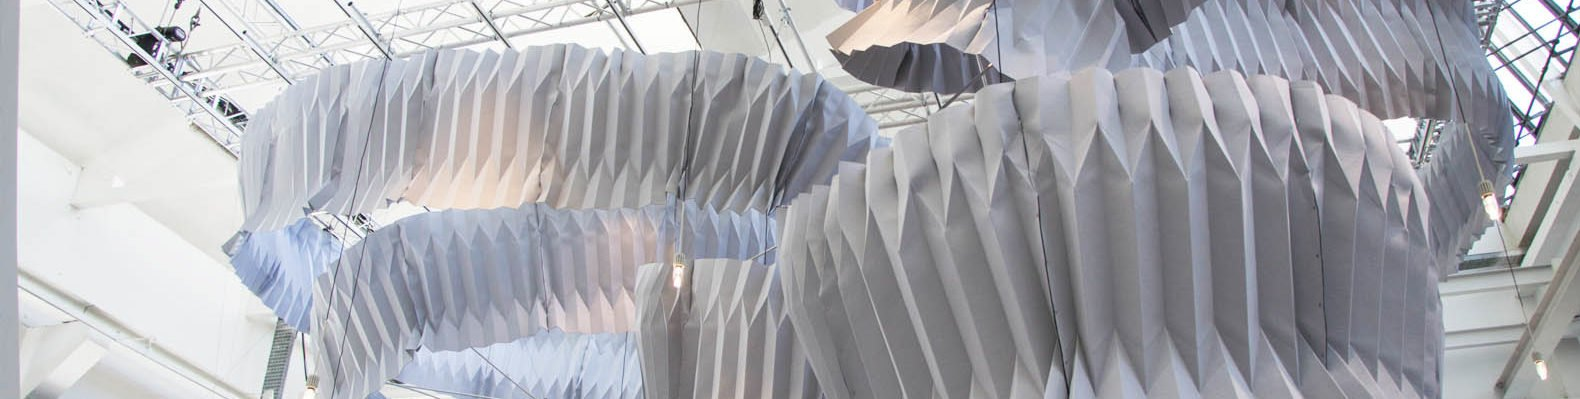 """The overall view of the """"Breathing"""" spiral by Kengo Kuma showcased at Superstudio in Zona Tortona during Milan Design Week 2018"""